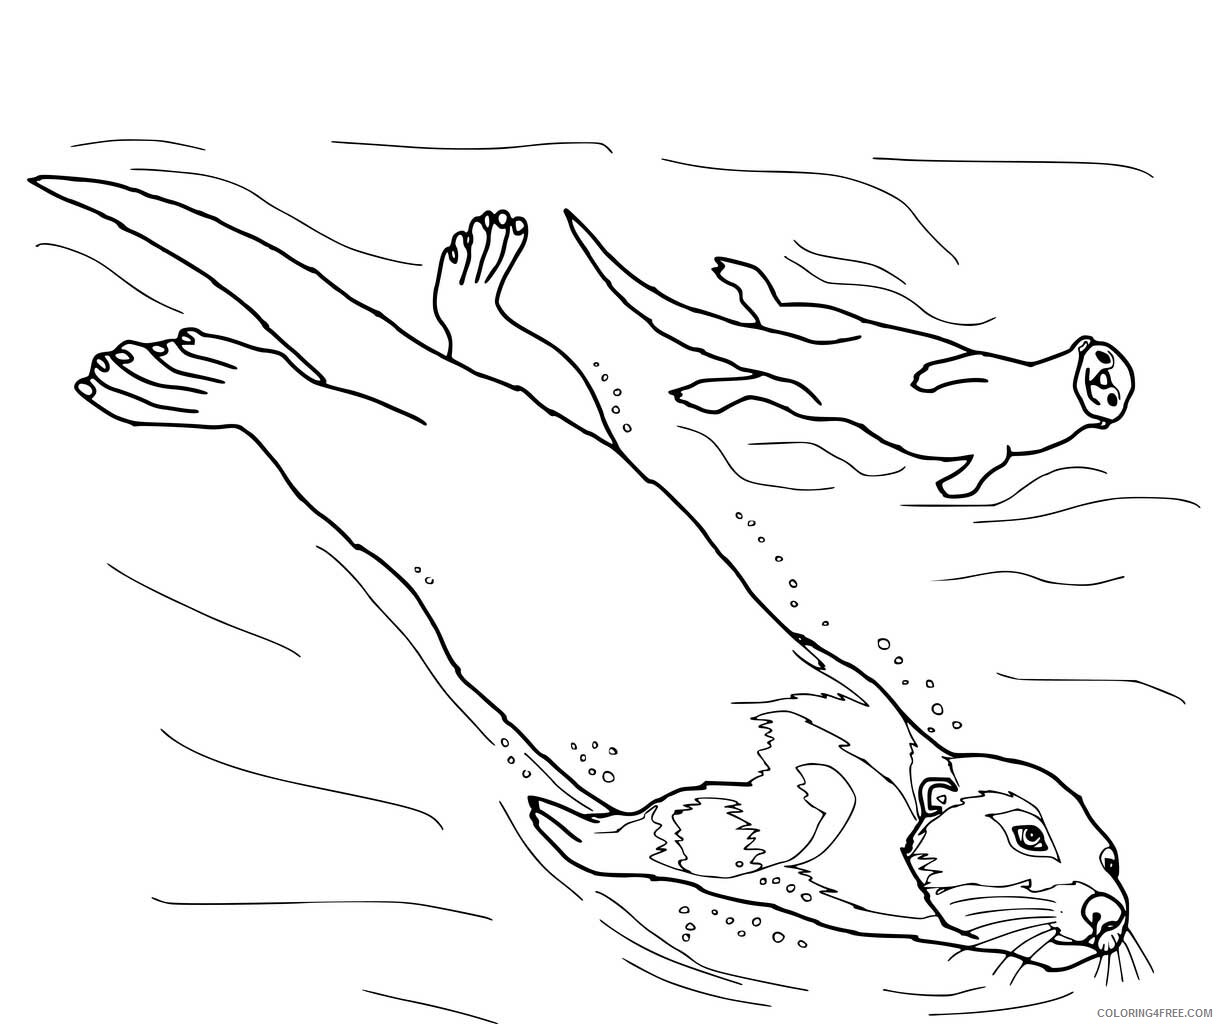 Otter Coloring Pages Animal Printable Sheets Otter 2021 3586 Coloring4free